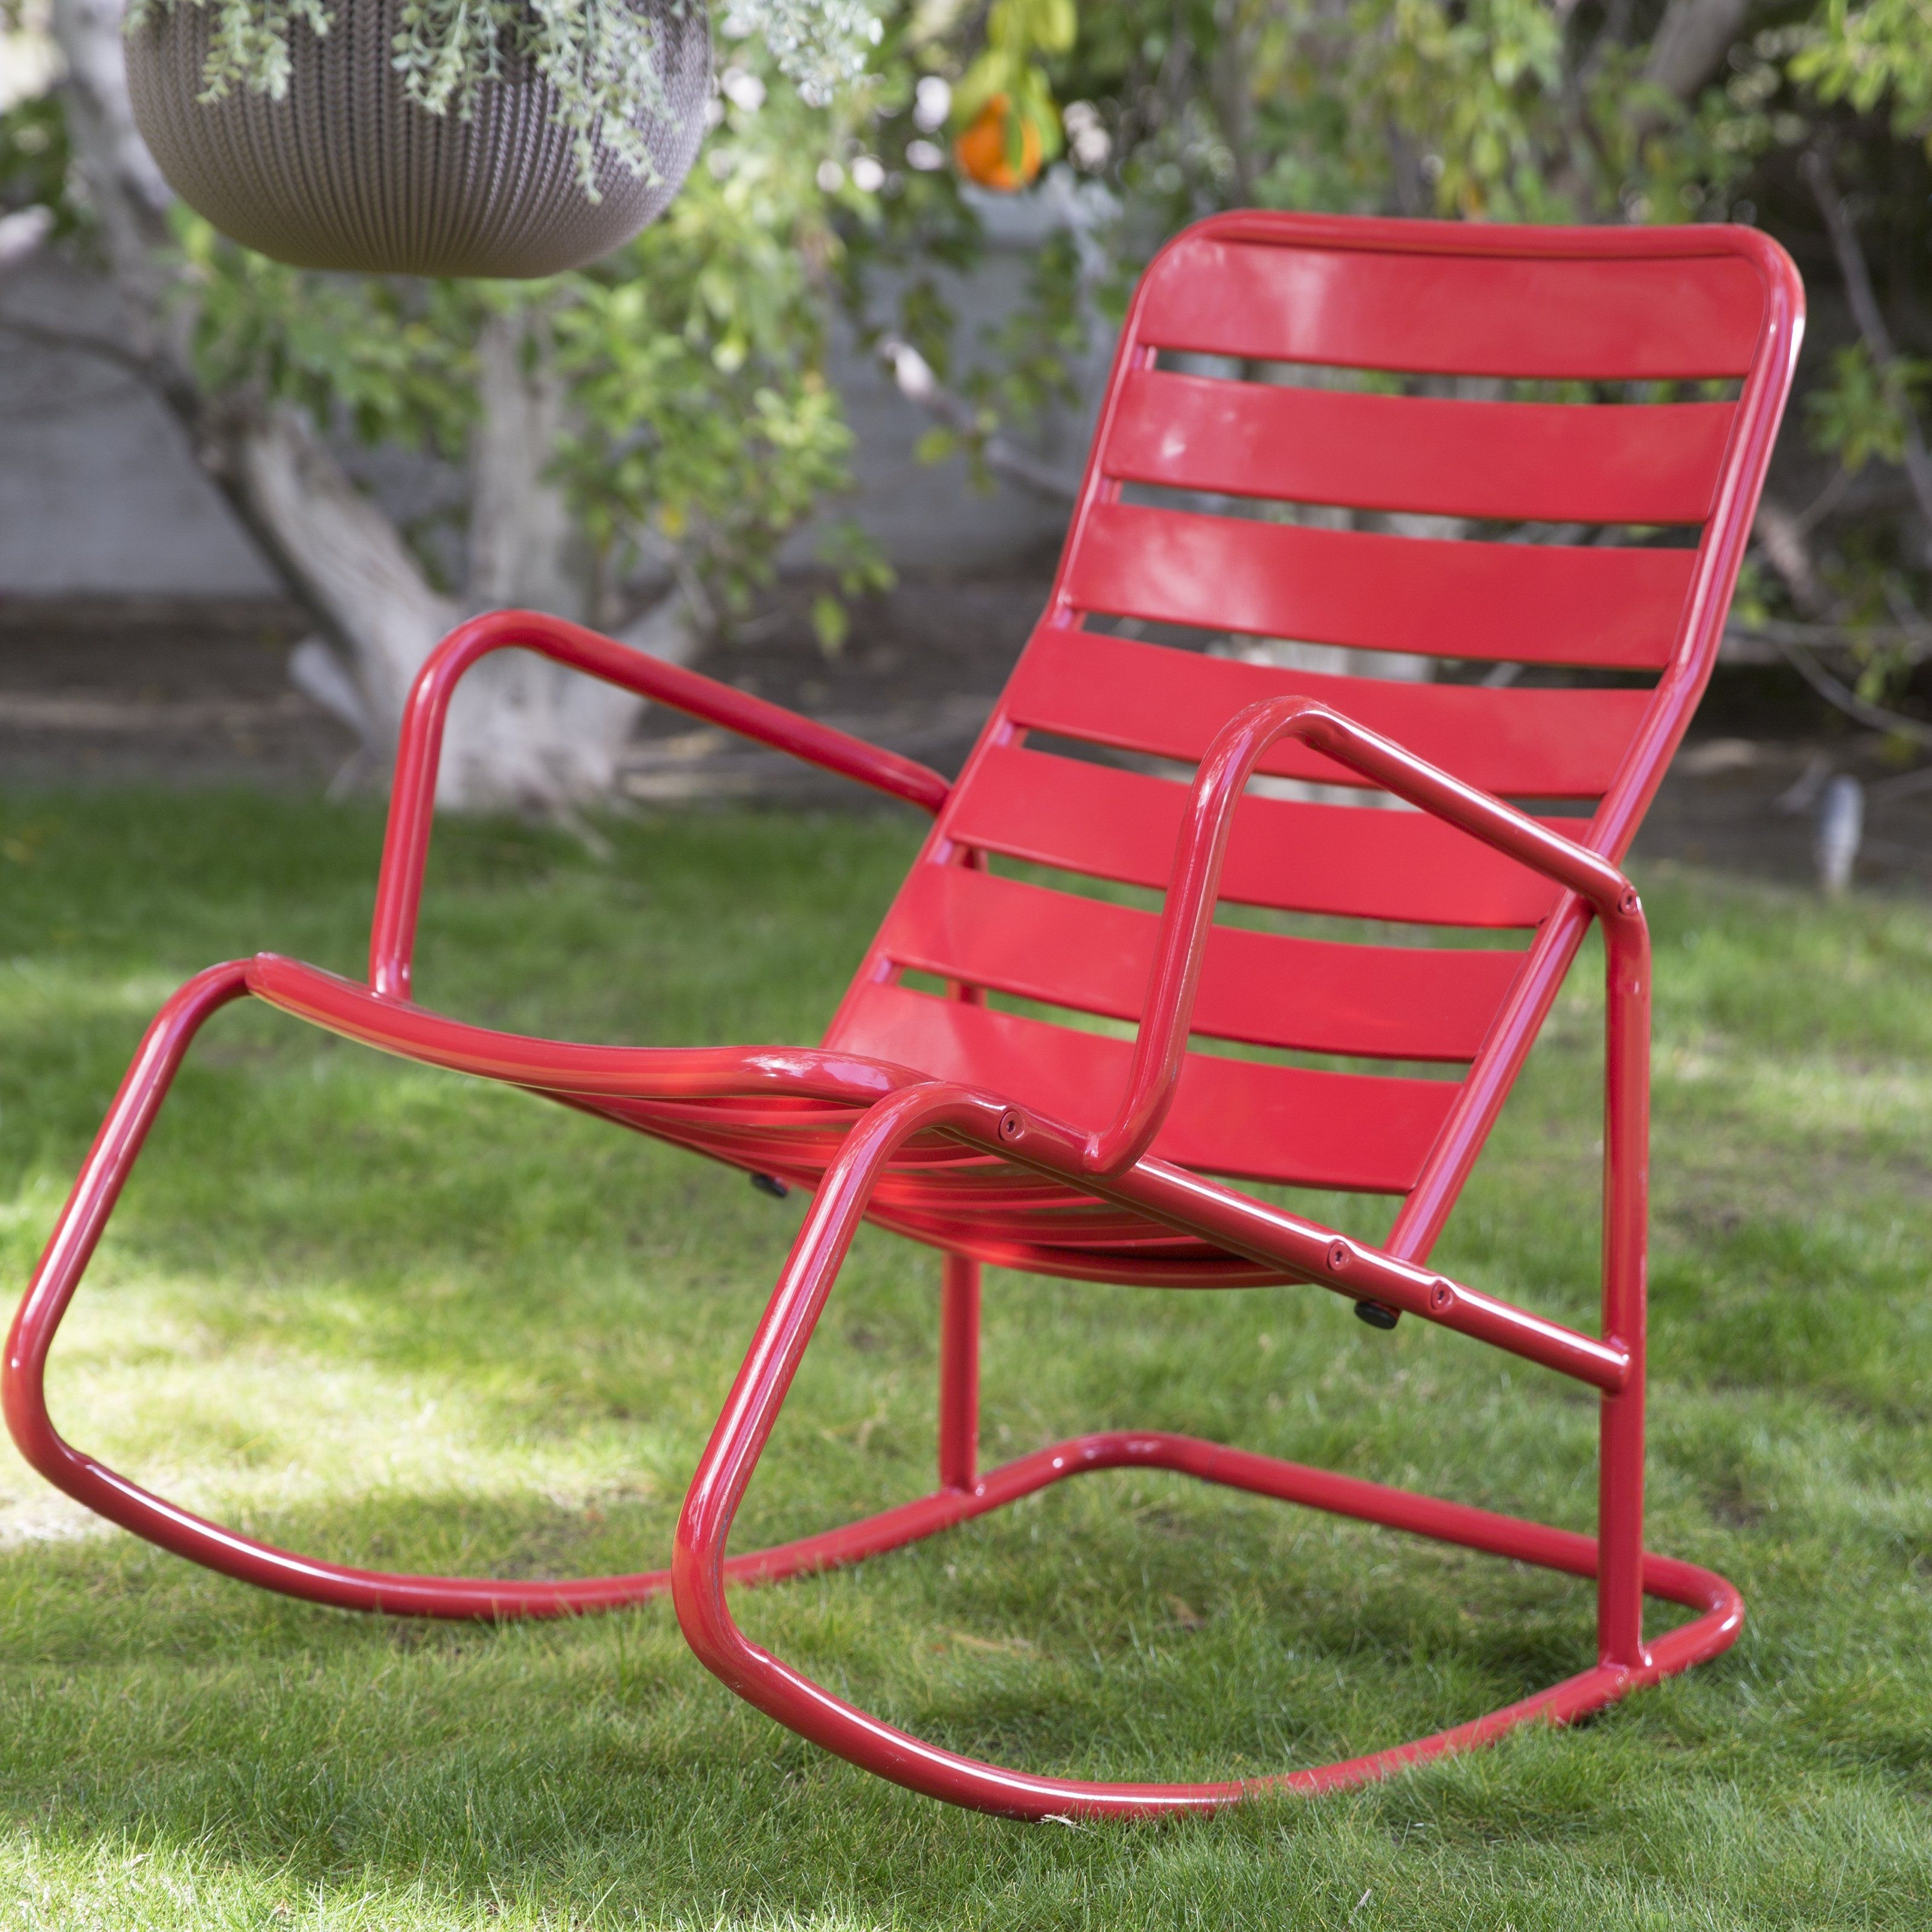 Belham Living Adley Outdoor Metal Slat Rocking Chair – Contemporary Regarding Most Current Iron Rocking Patio Chairs (View 1 of 15)